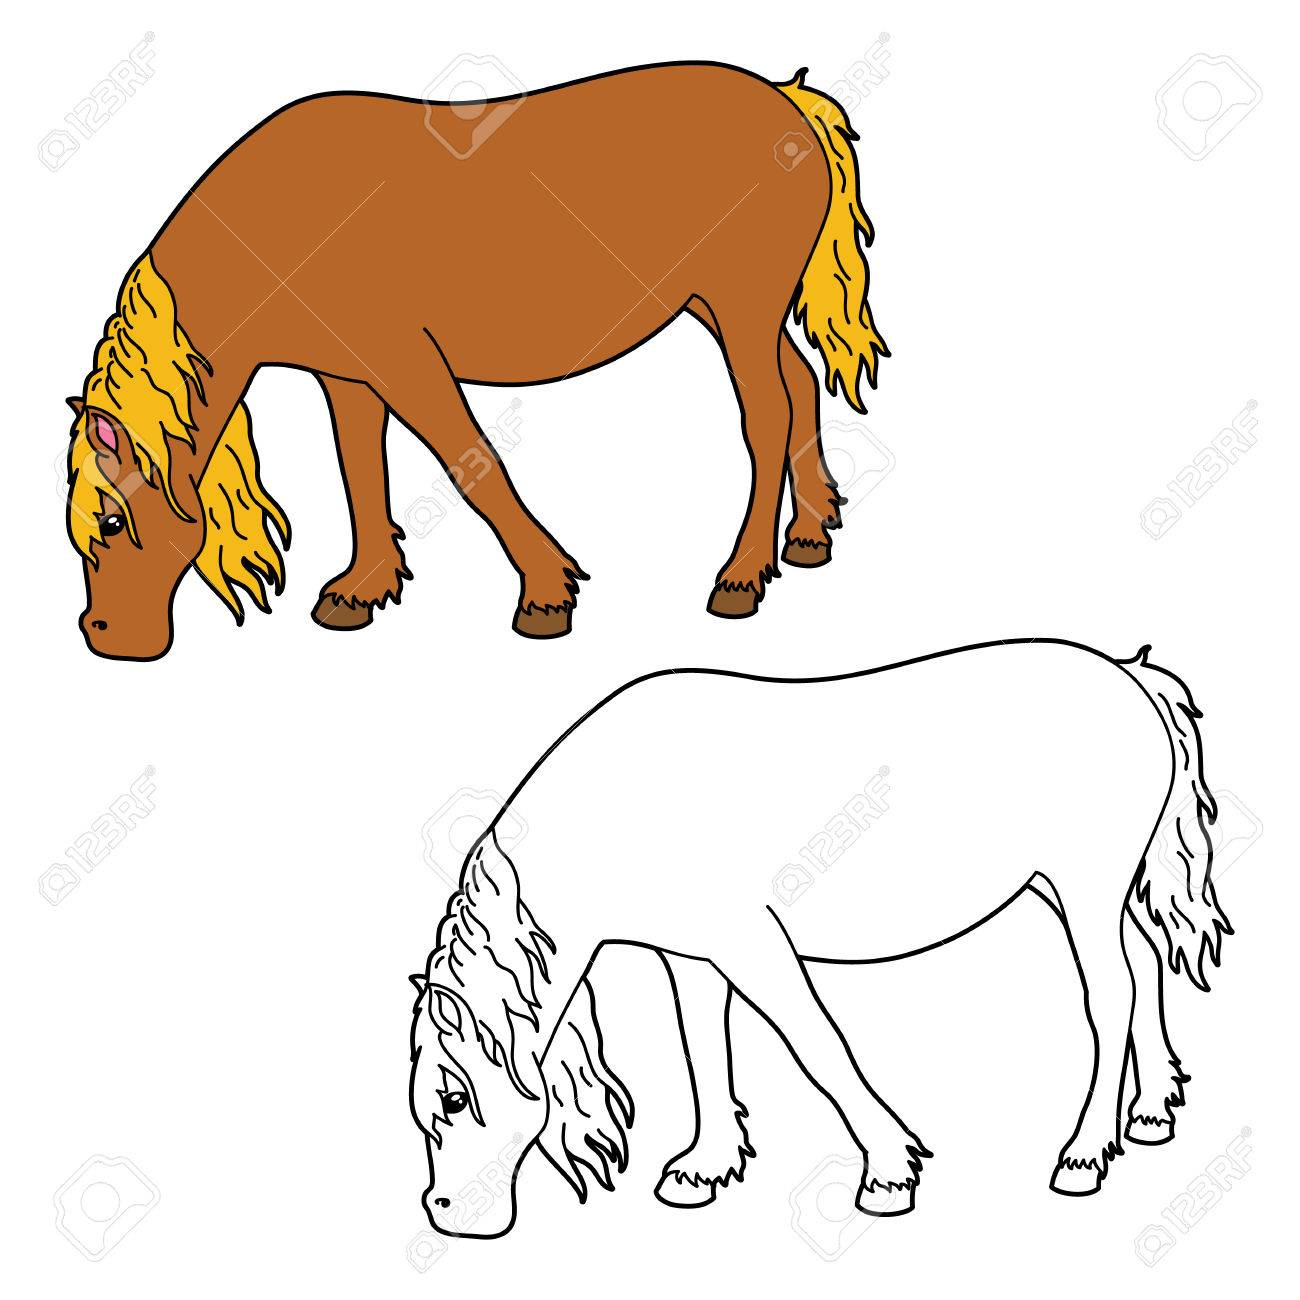 Horse Coloring Page Vector Educational Of Happy Cartoon For Children